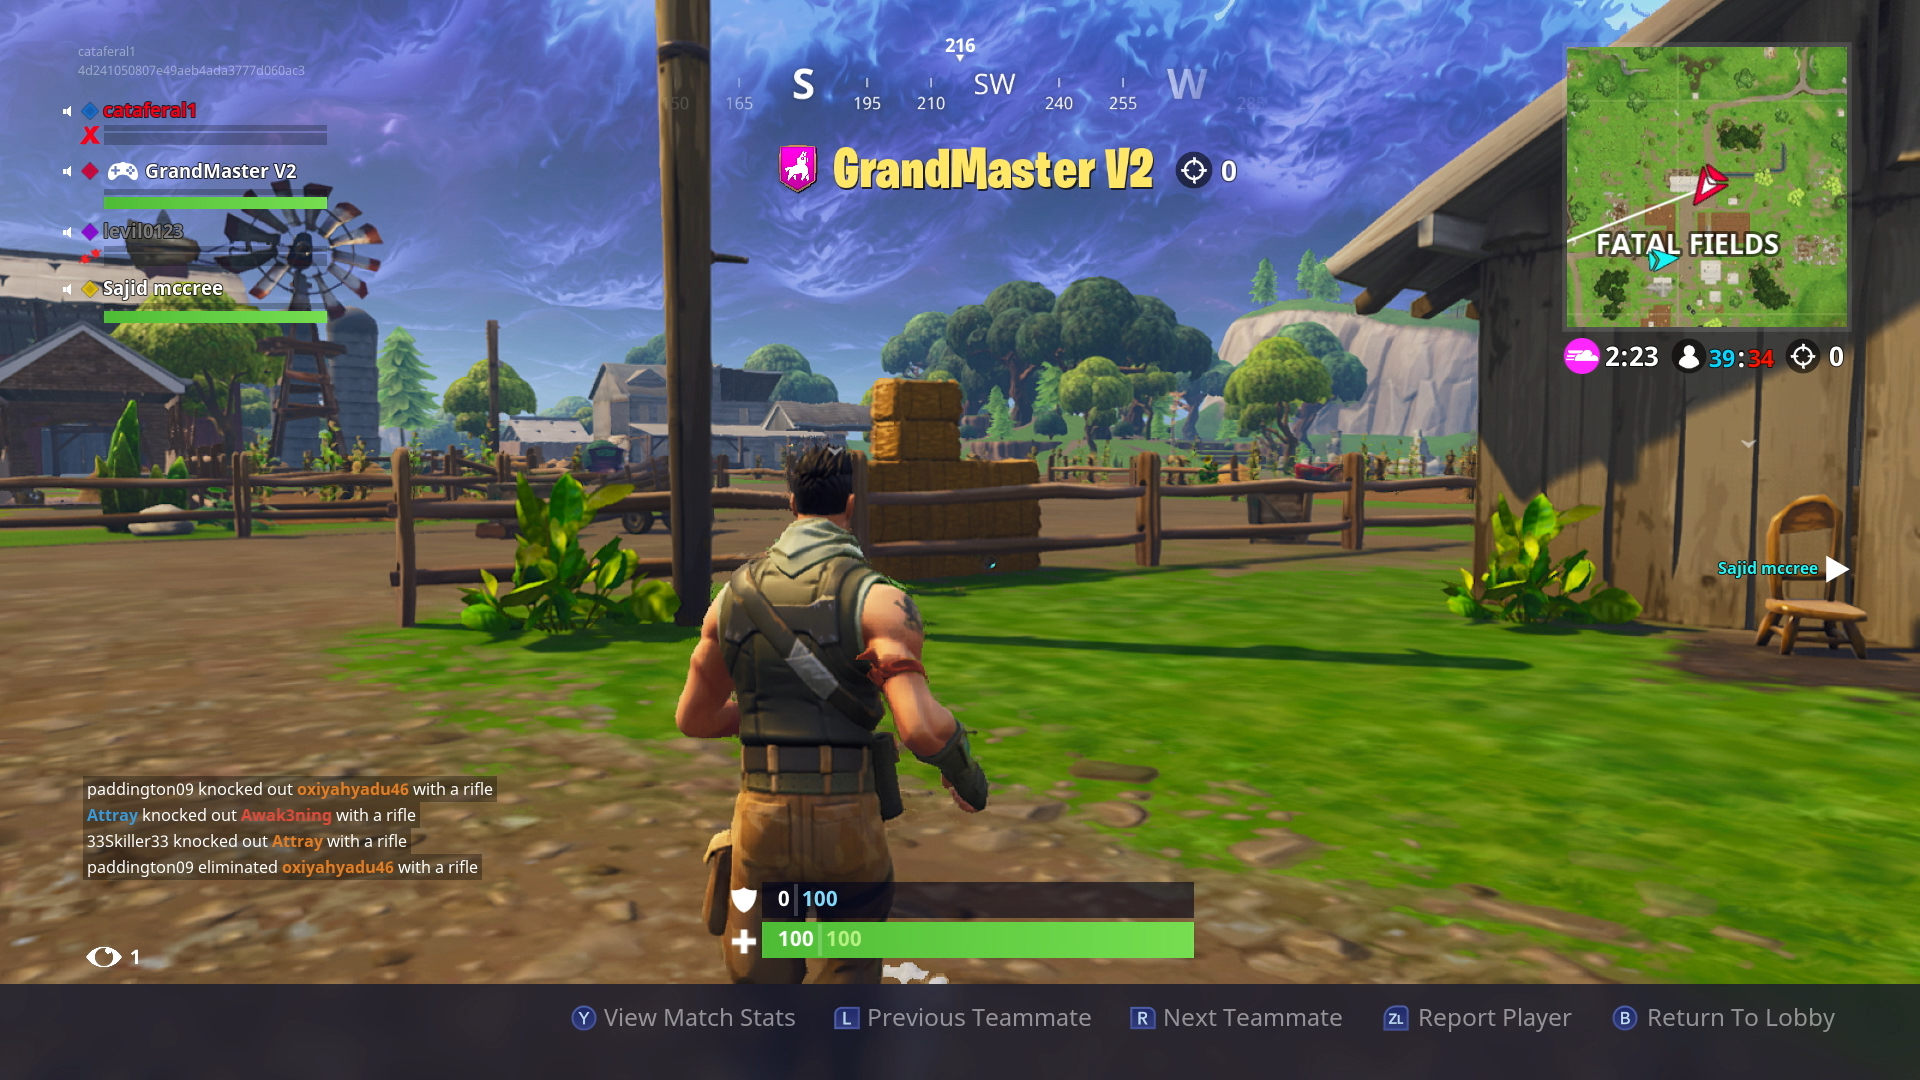 f9bc588ada9fa Fortnite's Switch port is impressive - but frame-rate could be ...